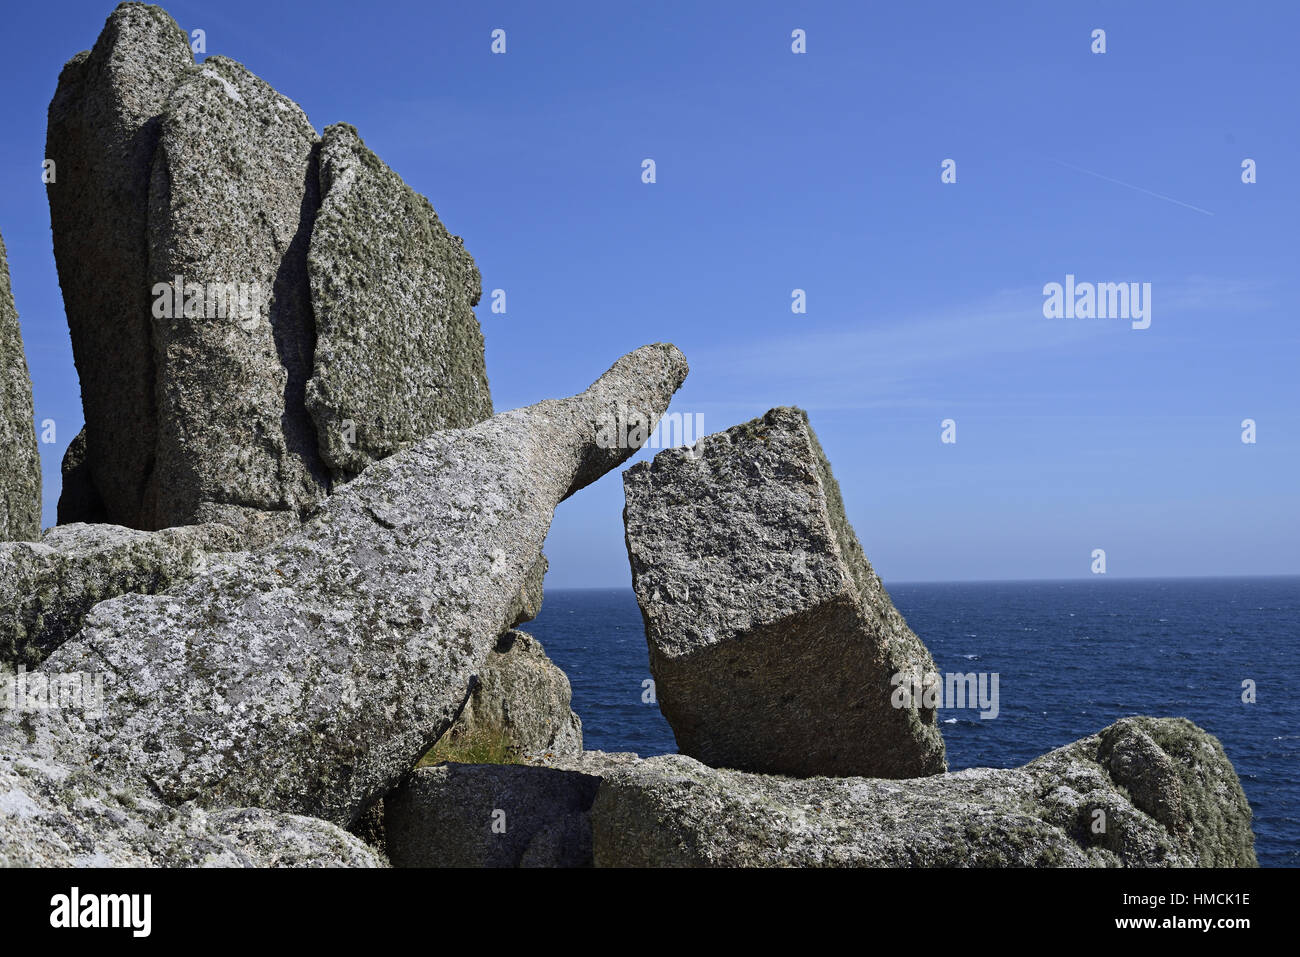 Massive granite blocks adjacent to the Logan Rock on the Treen headland in south Cornwall, with the sea below. - Stock Image